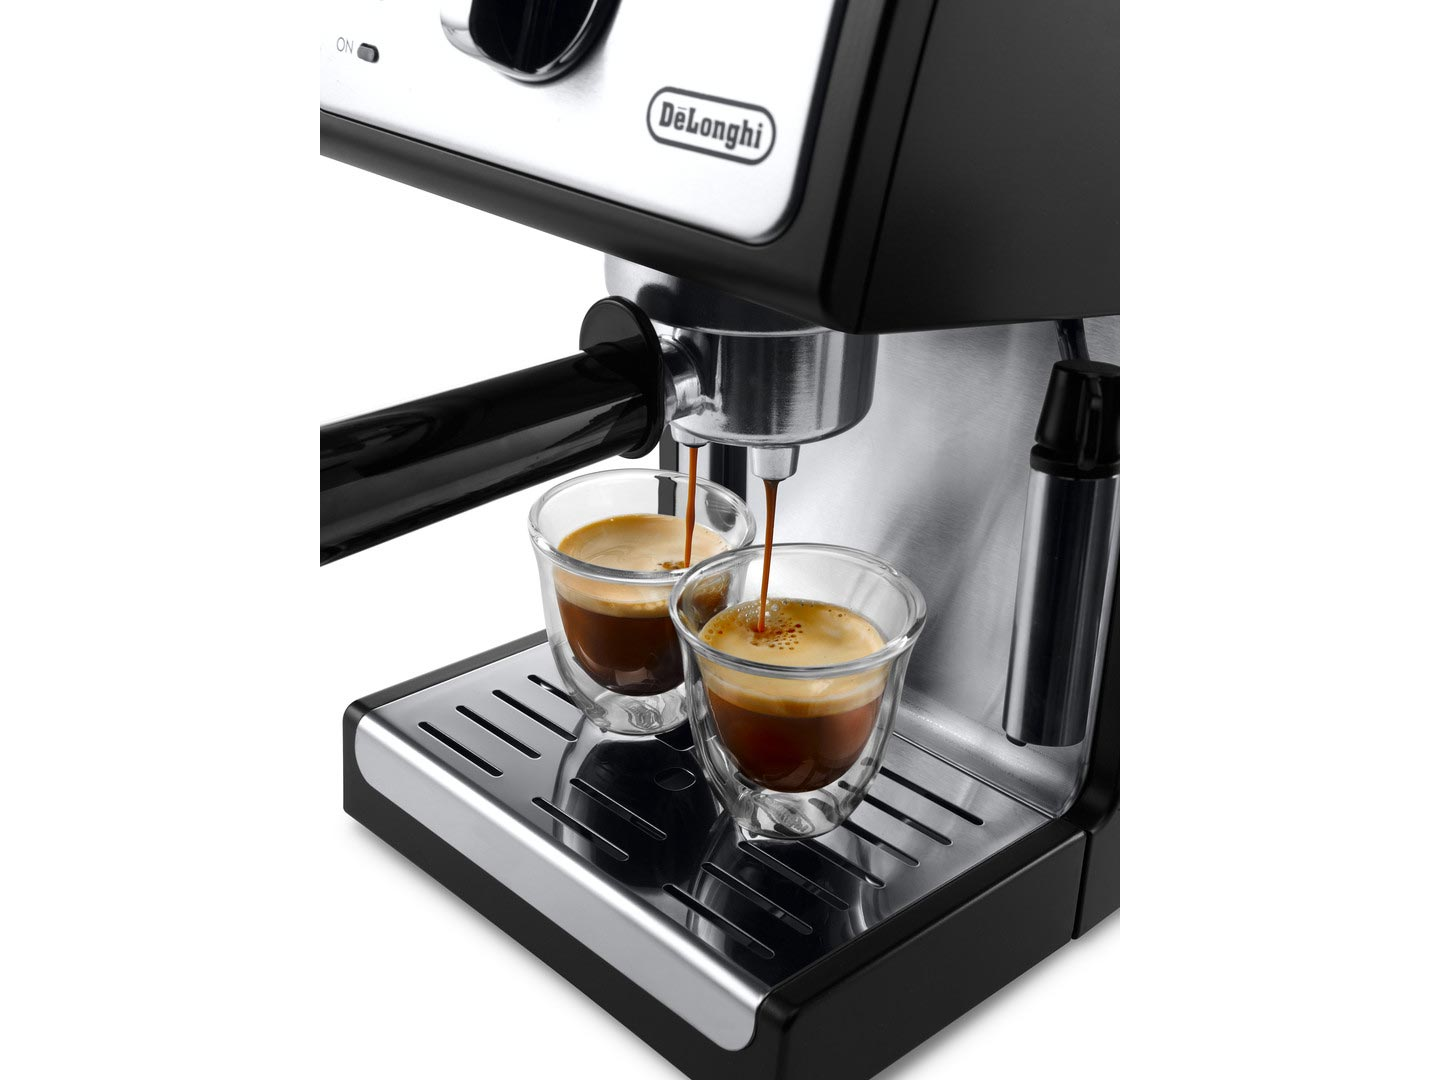 Delonghi Pump Espresso Machine Ecp 3420 The Best Machine